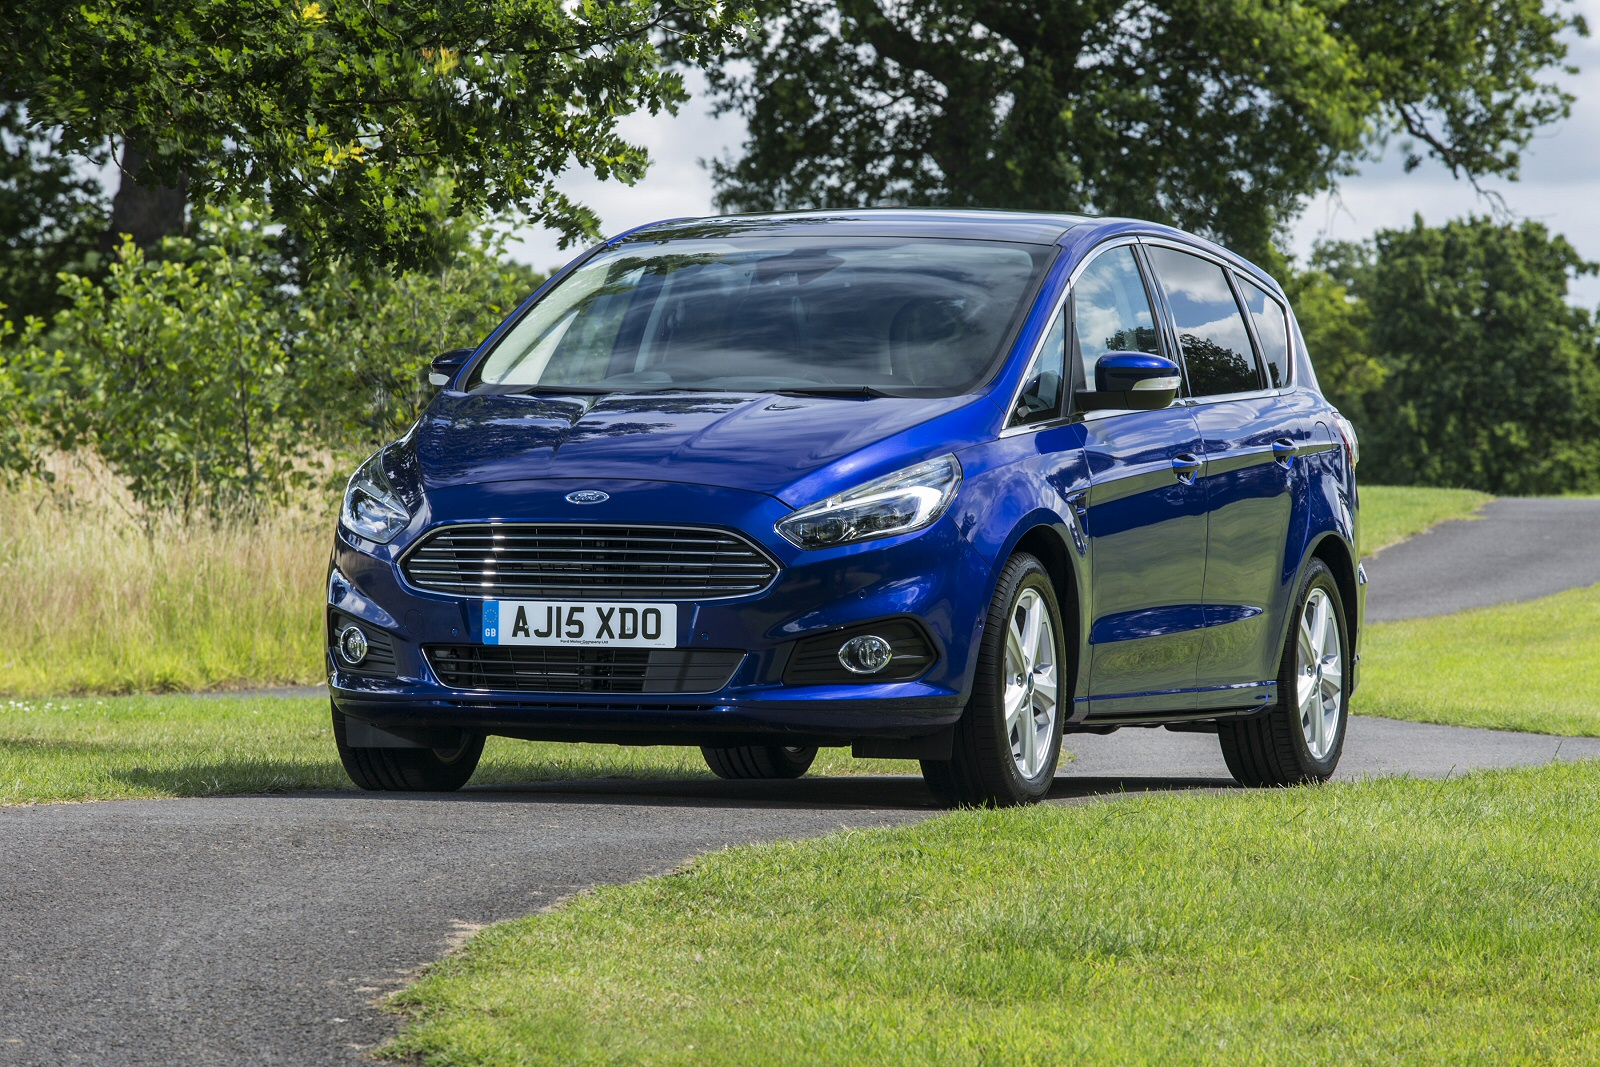 new ford s max review new ford s max road test. Black Bedroom Furniture Sets. Home Design Ideas